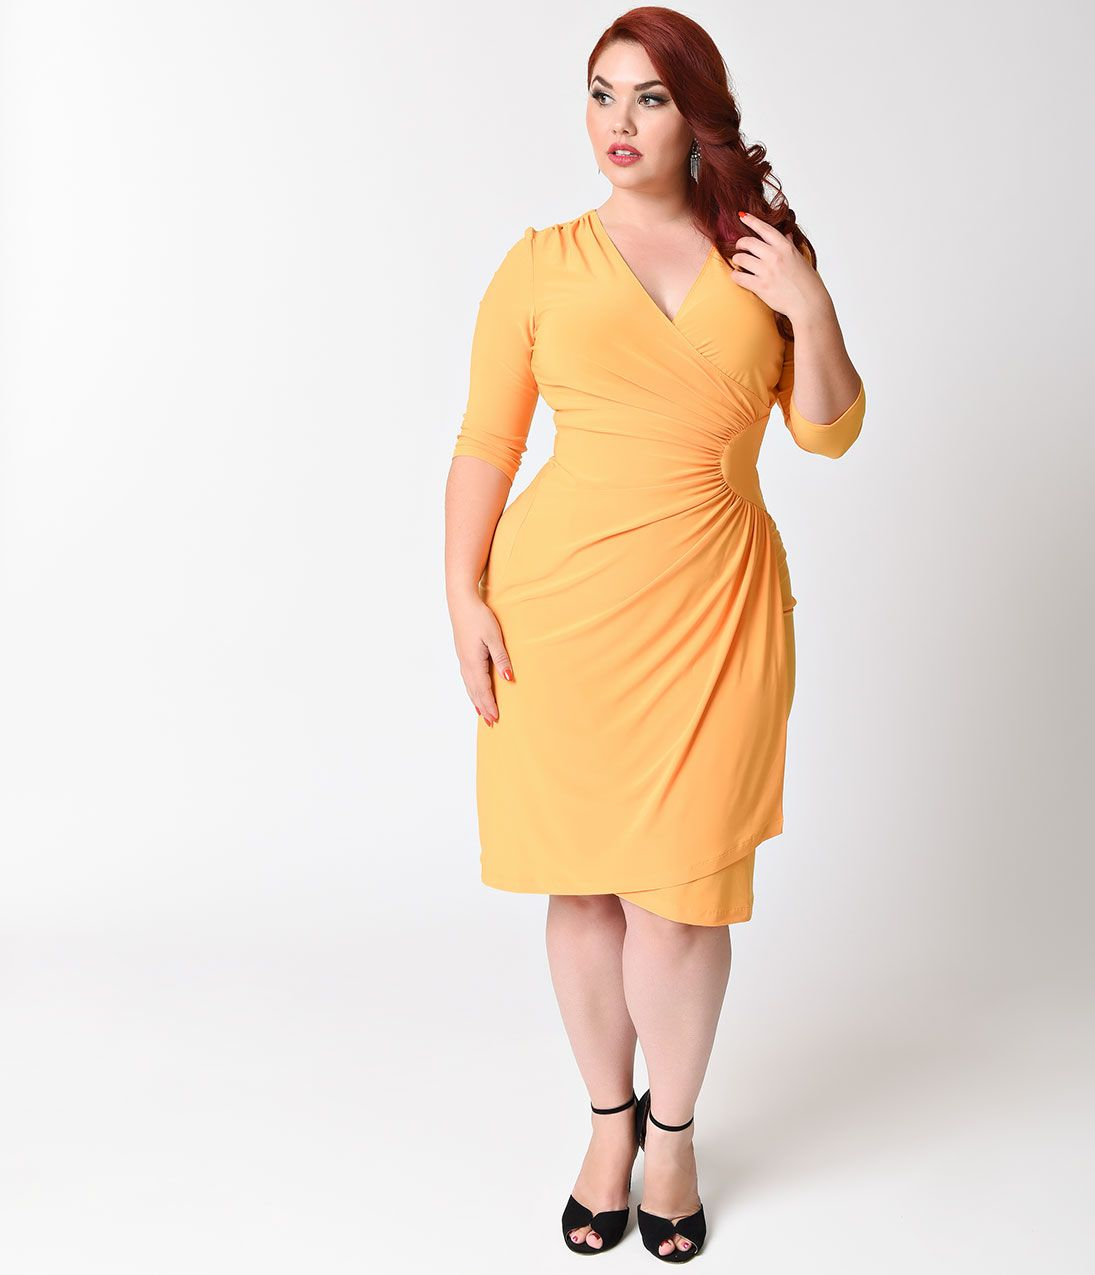 Plus Size Vintage Dresses, Plus Size Retro Dresses | Wrap dresses ...